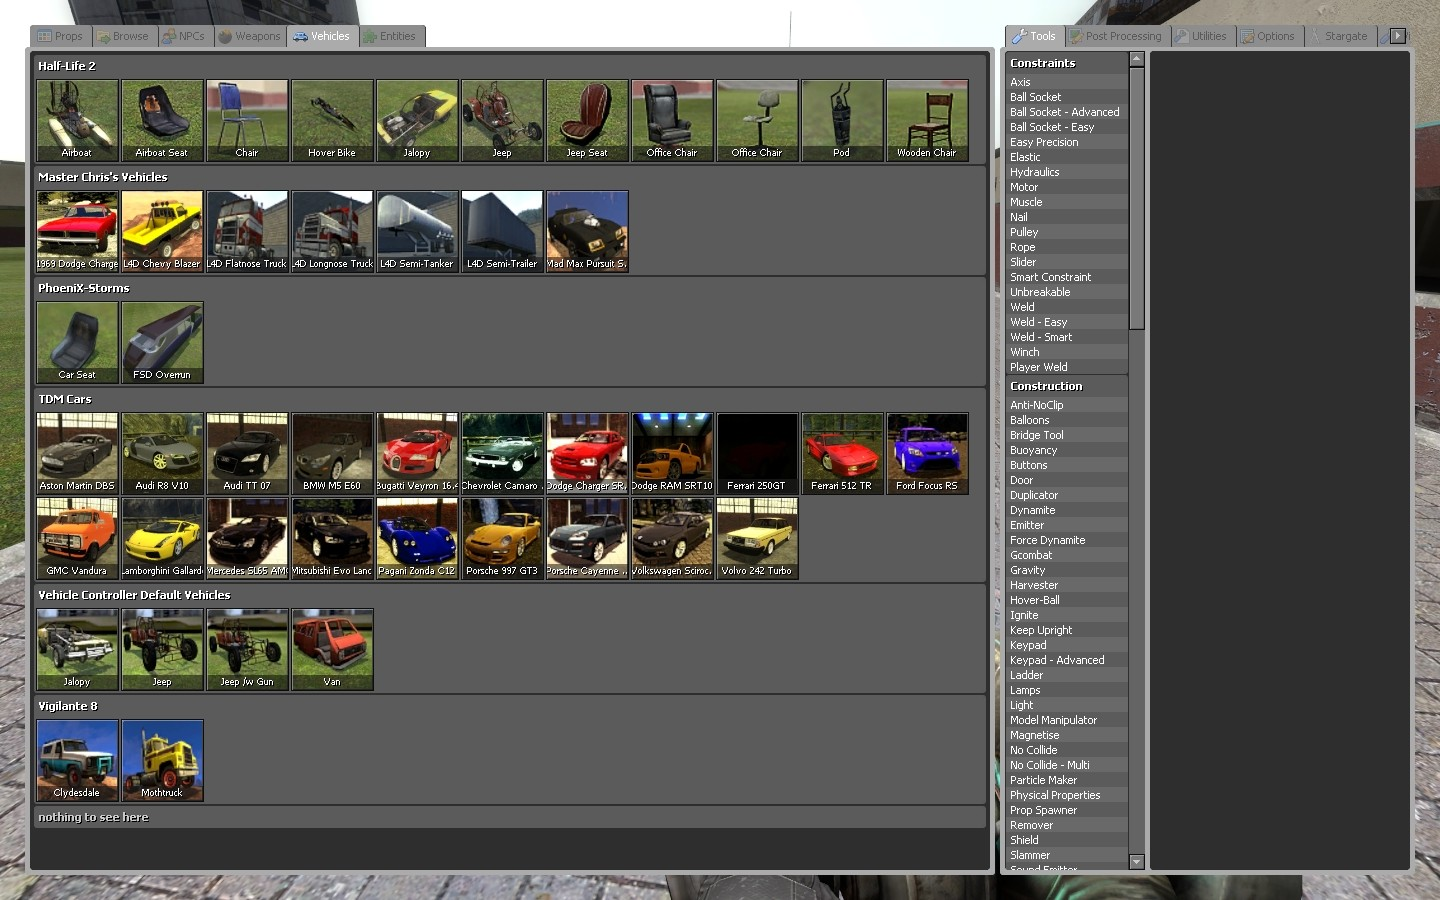 Garry's mod 12 tf2 addons (non-steam) youtube.